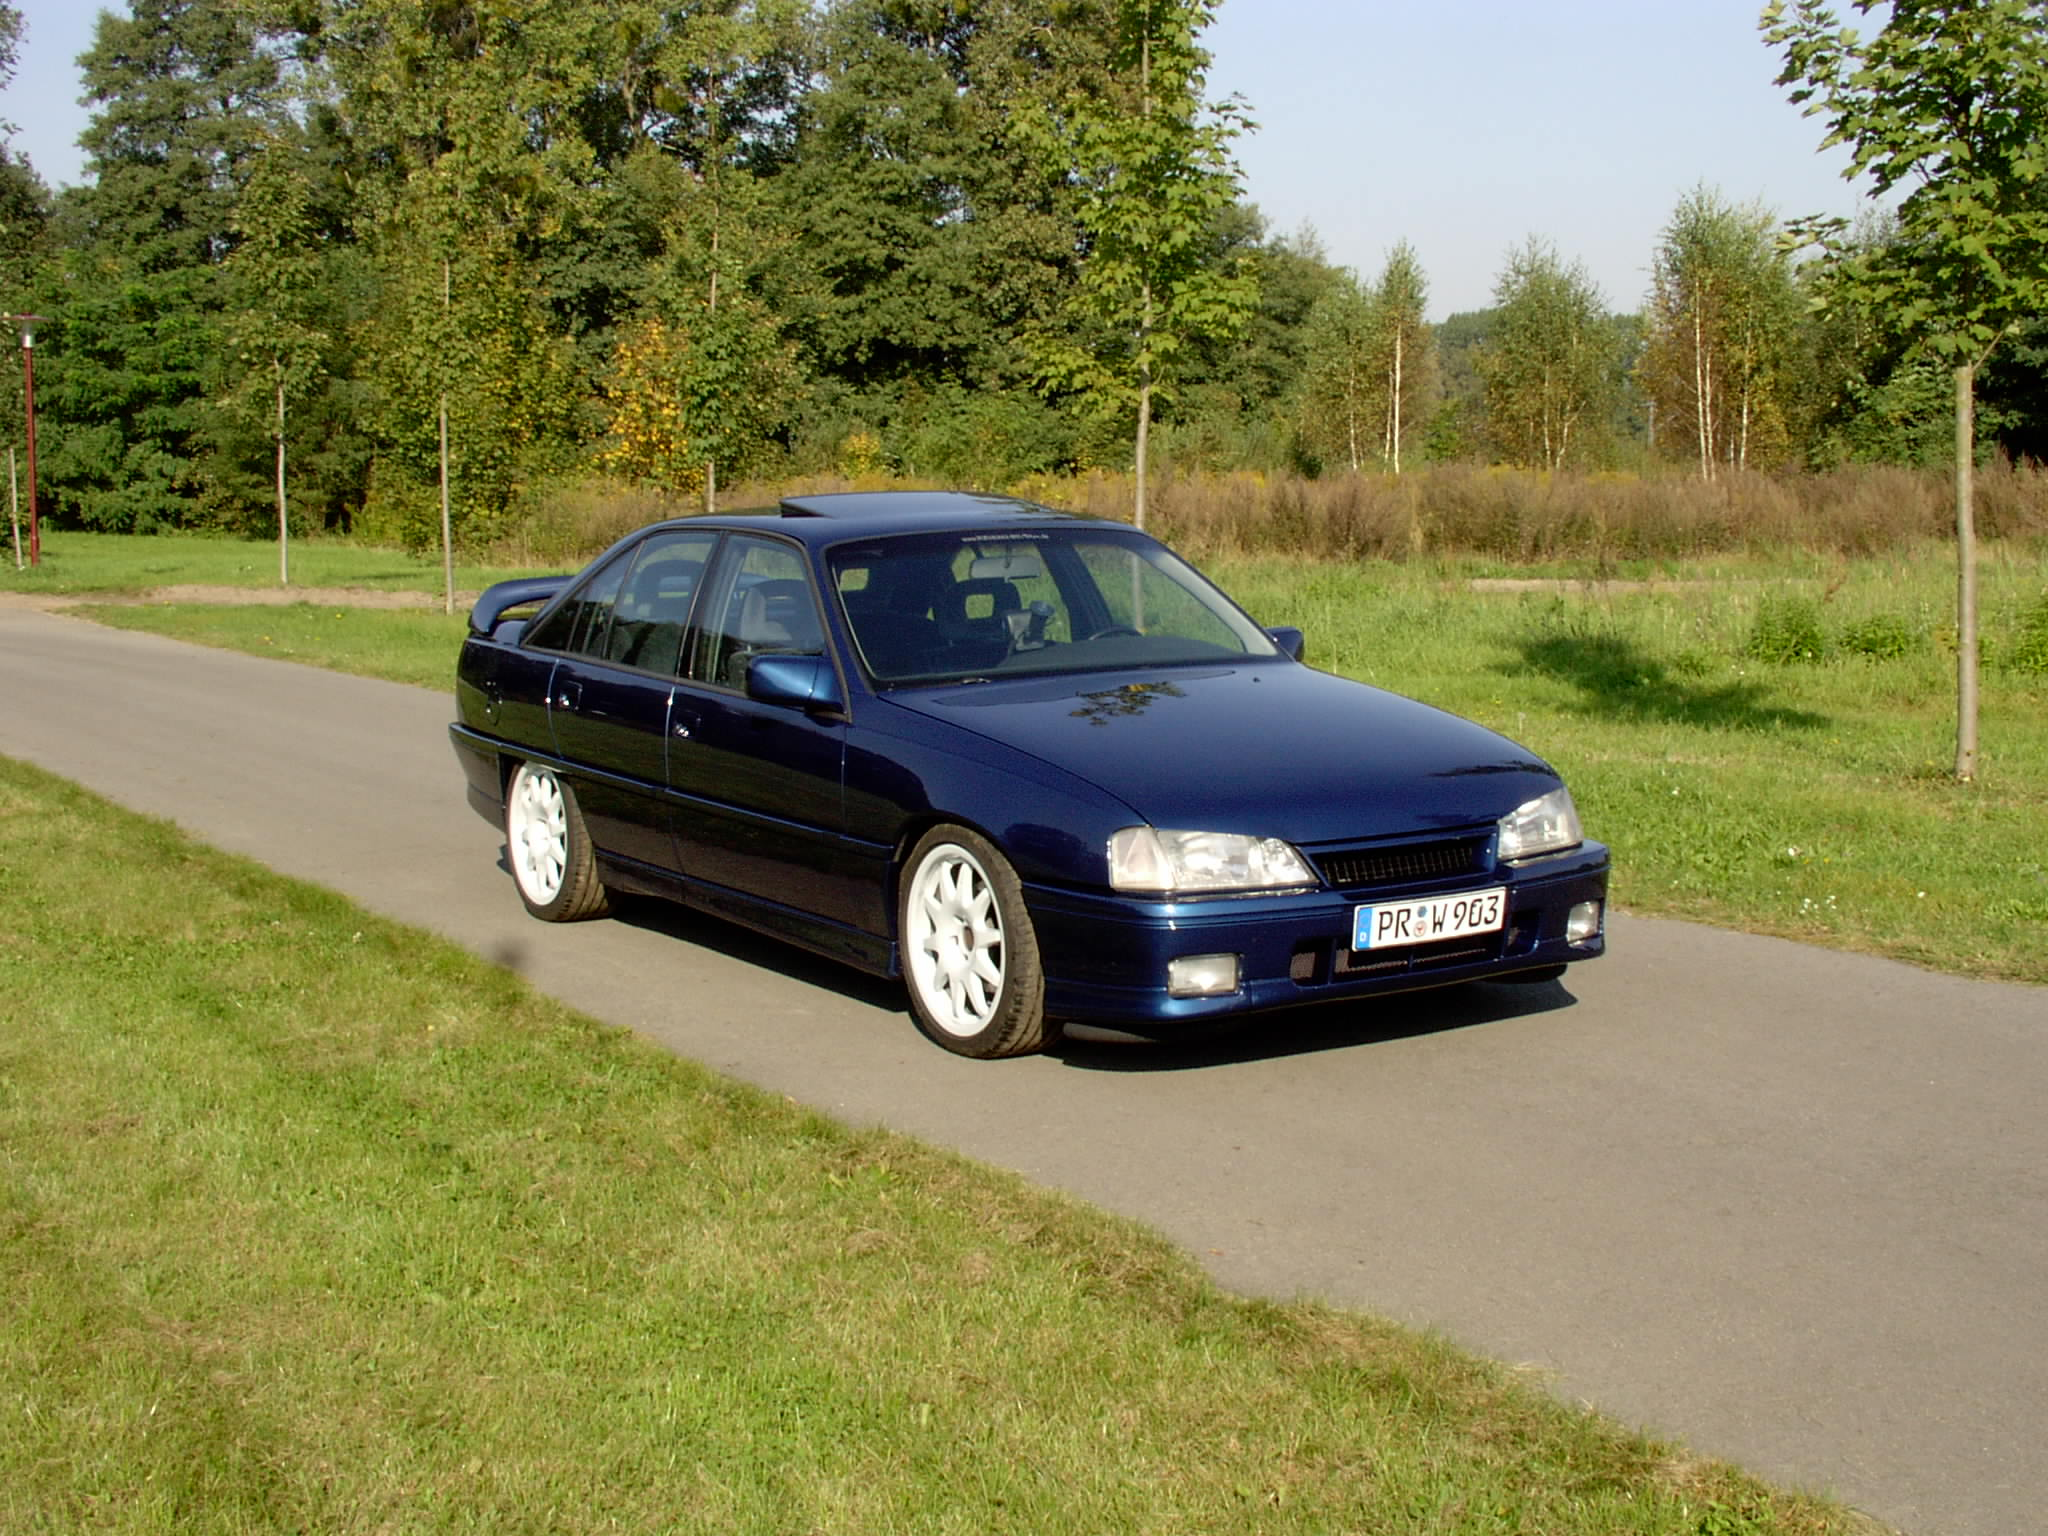 Opel omega 3000 (932 comments) Views 49540 Rating 68